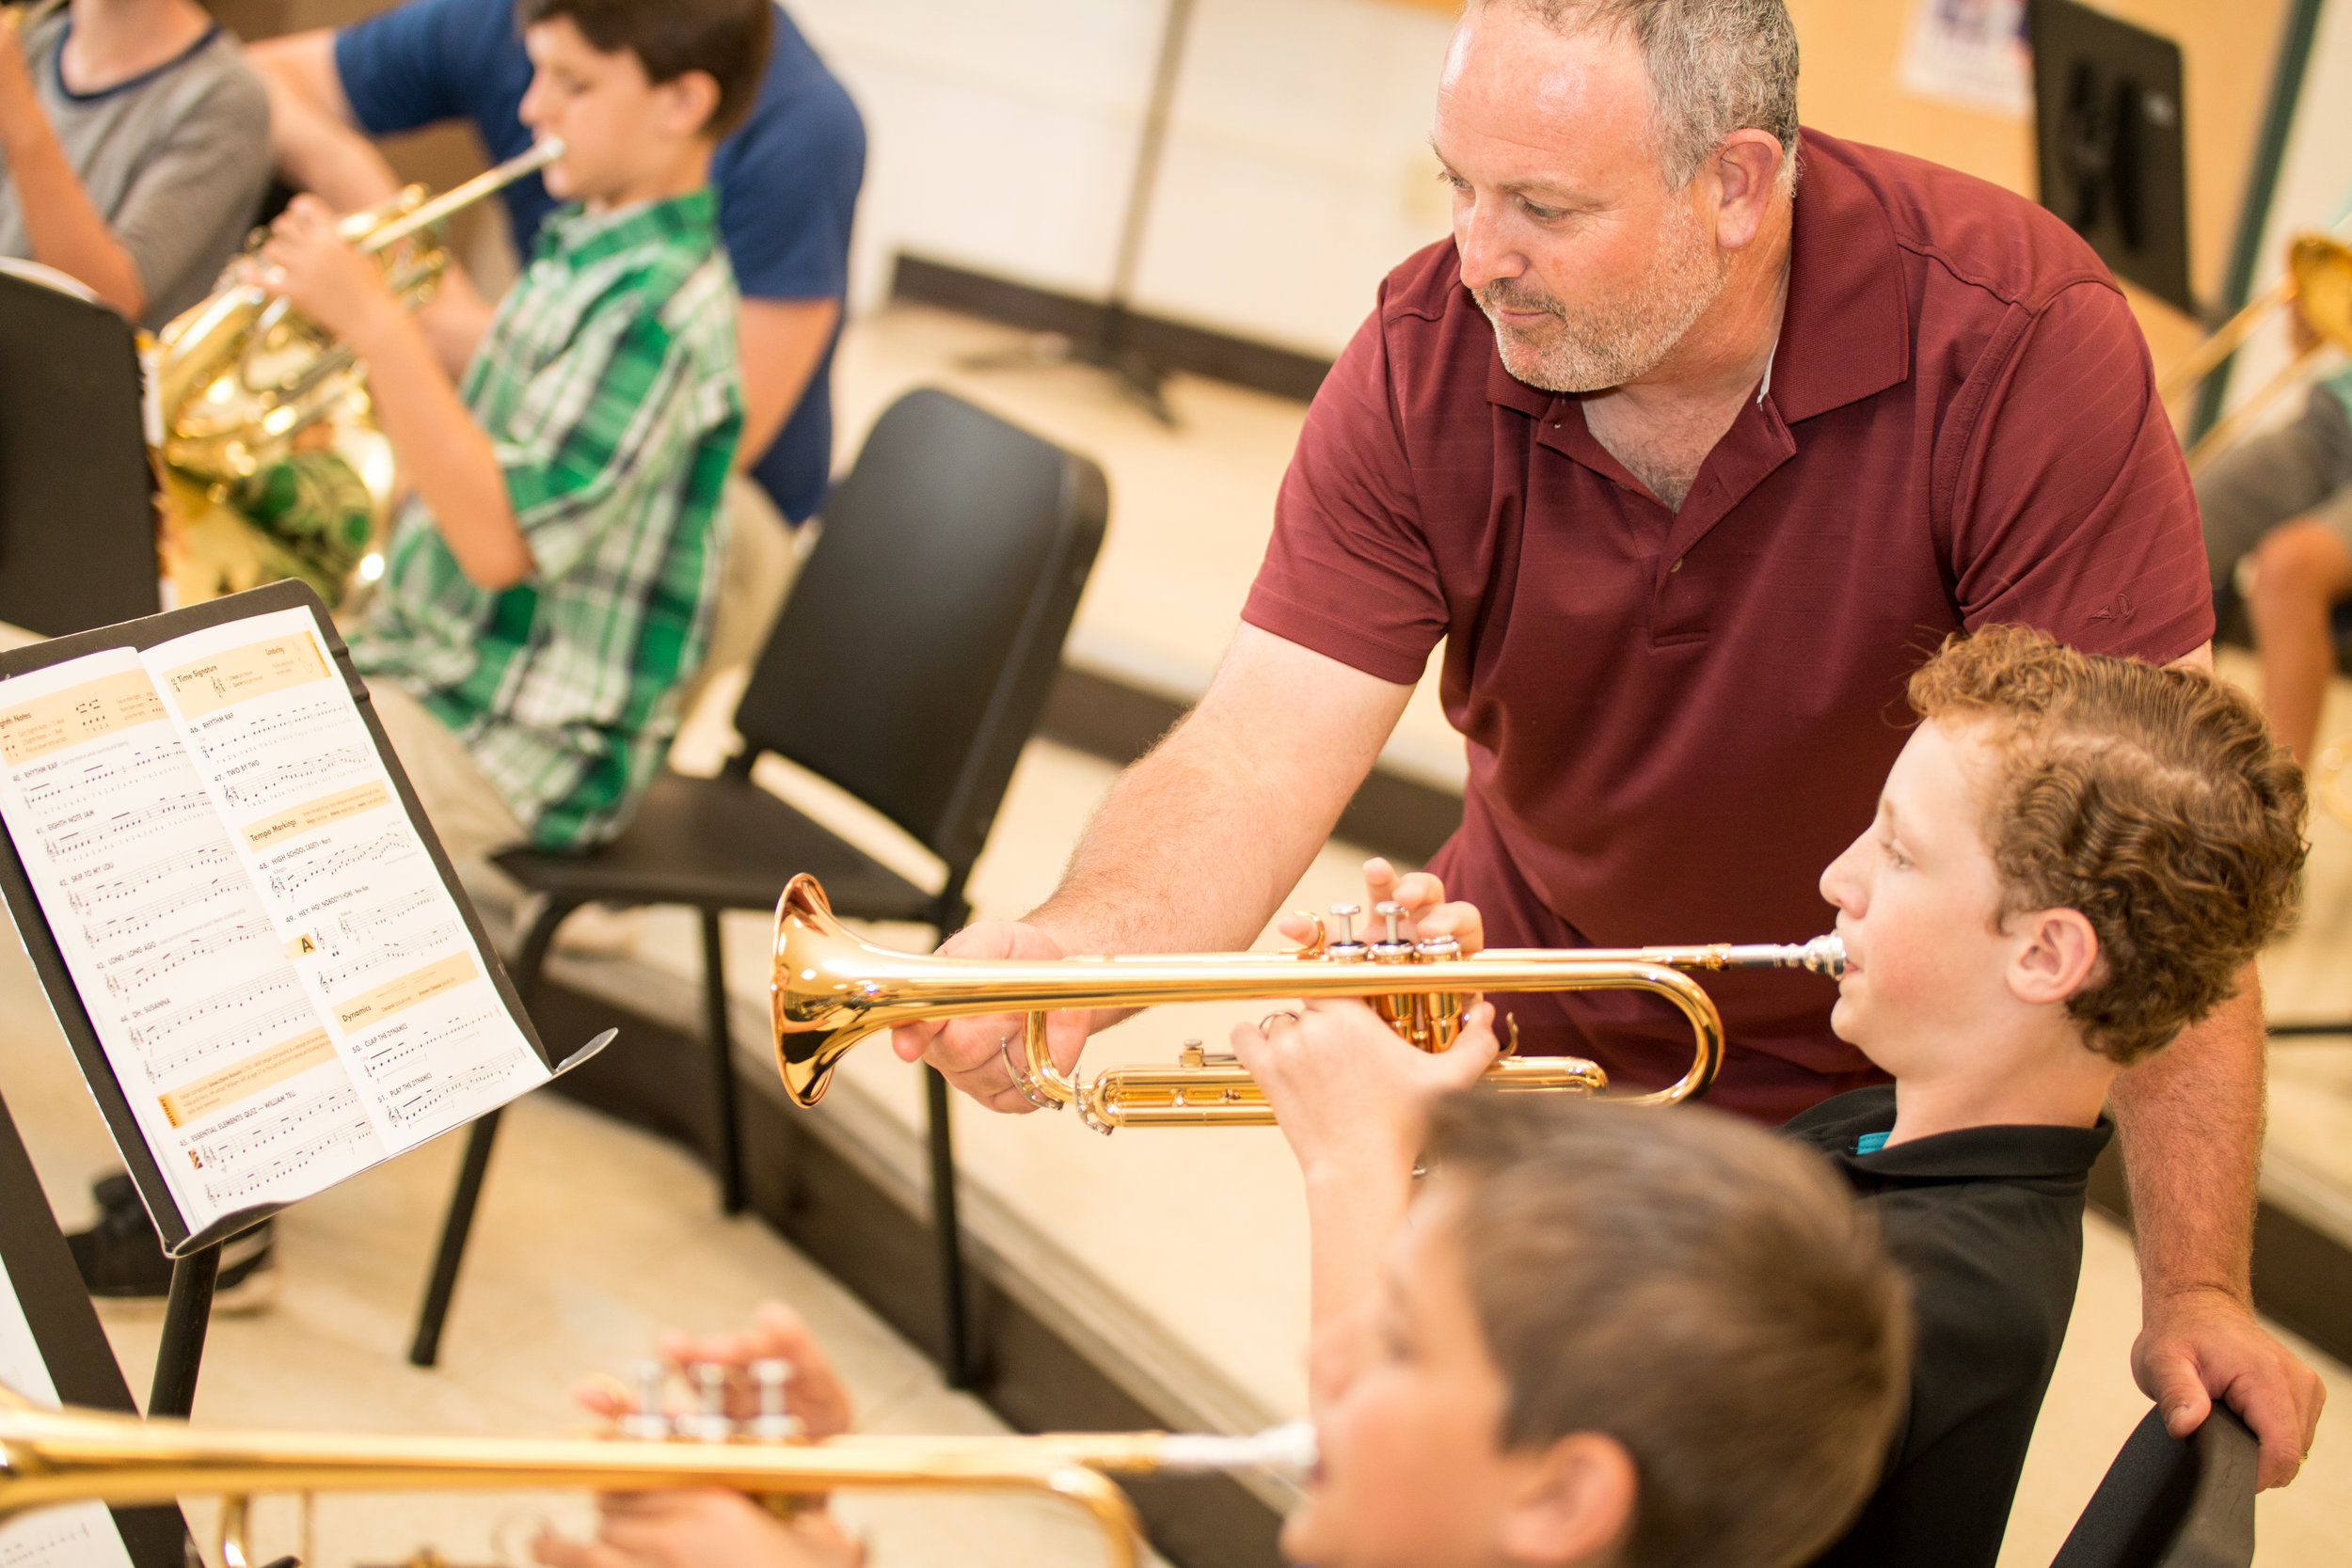 Utilize all staff in rehearsal when possible.